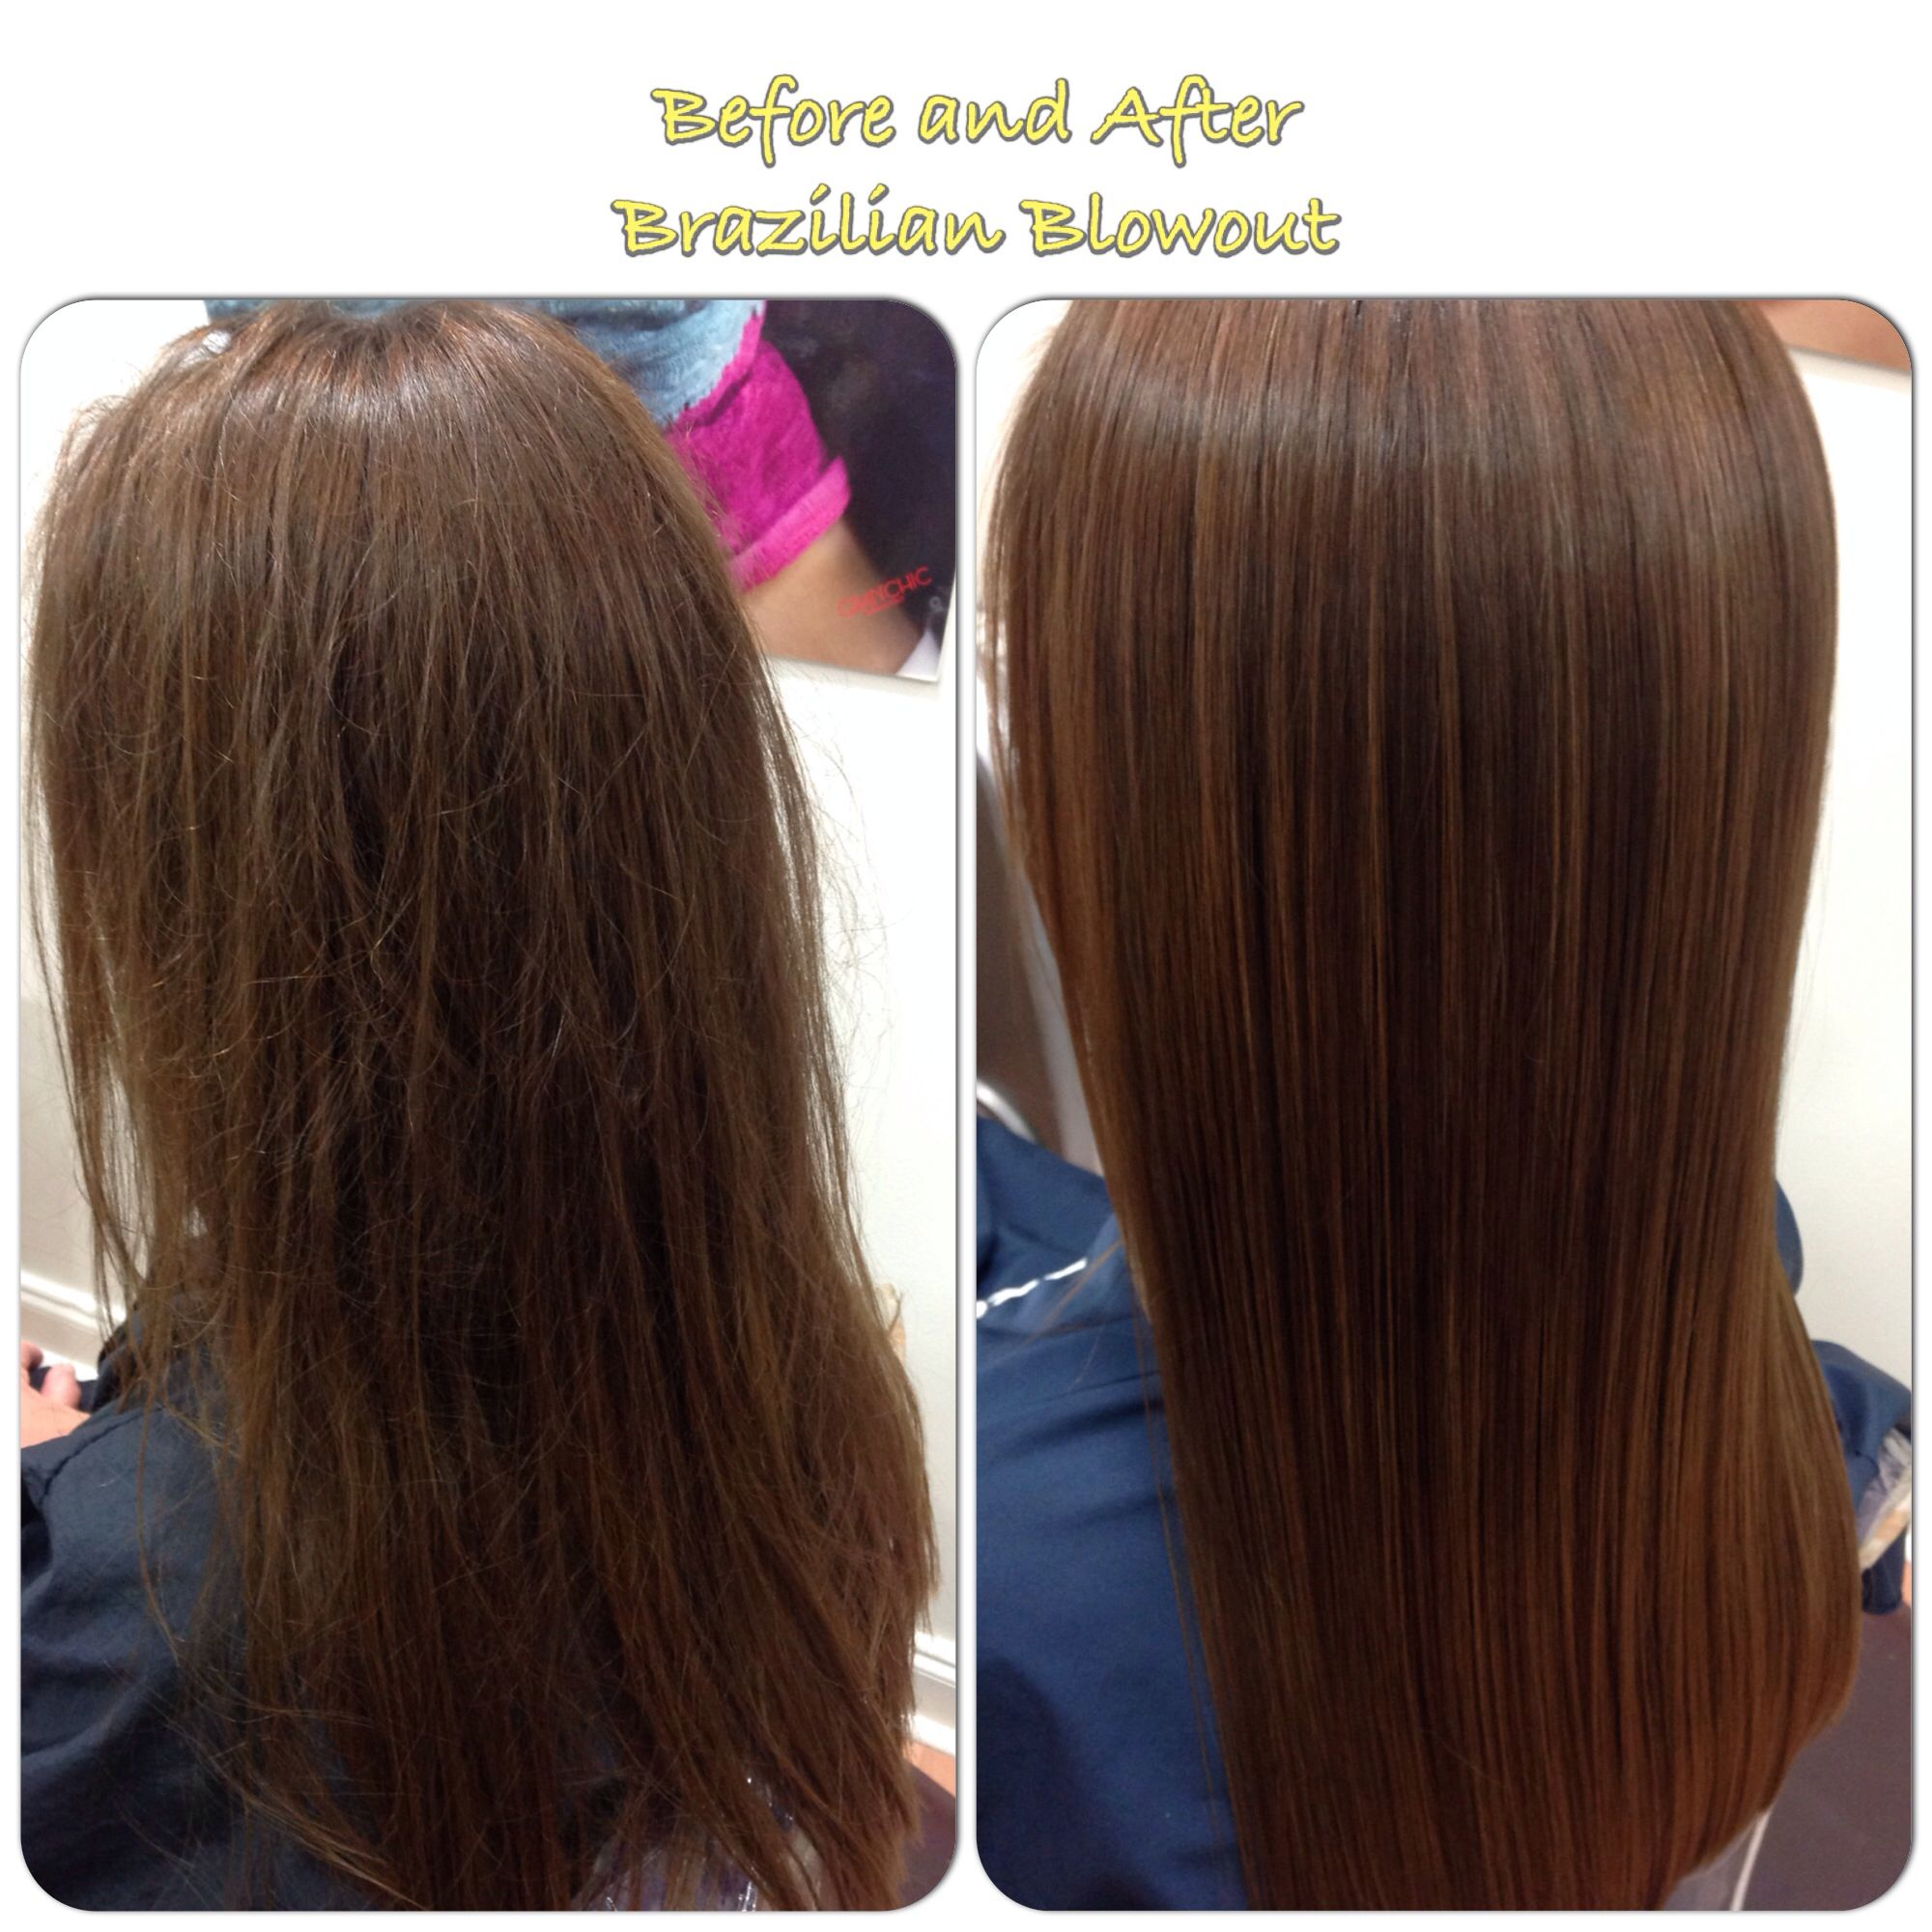 Pin By Carol Bakowicz On Before And After Brazilian Blowout Hair Lengths Hair